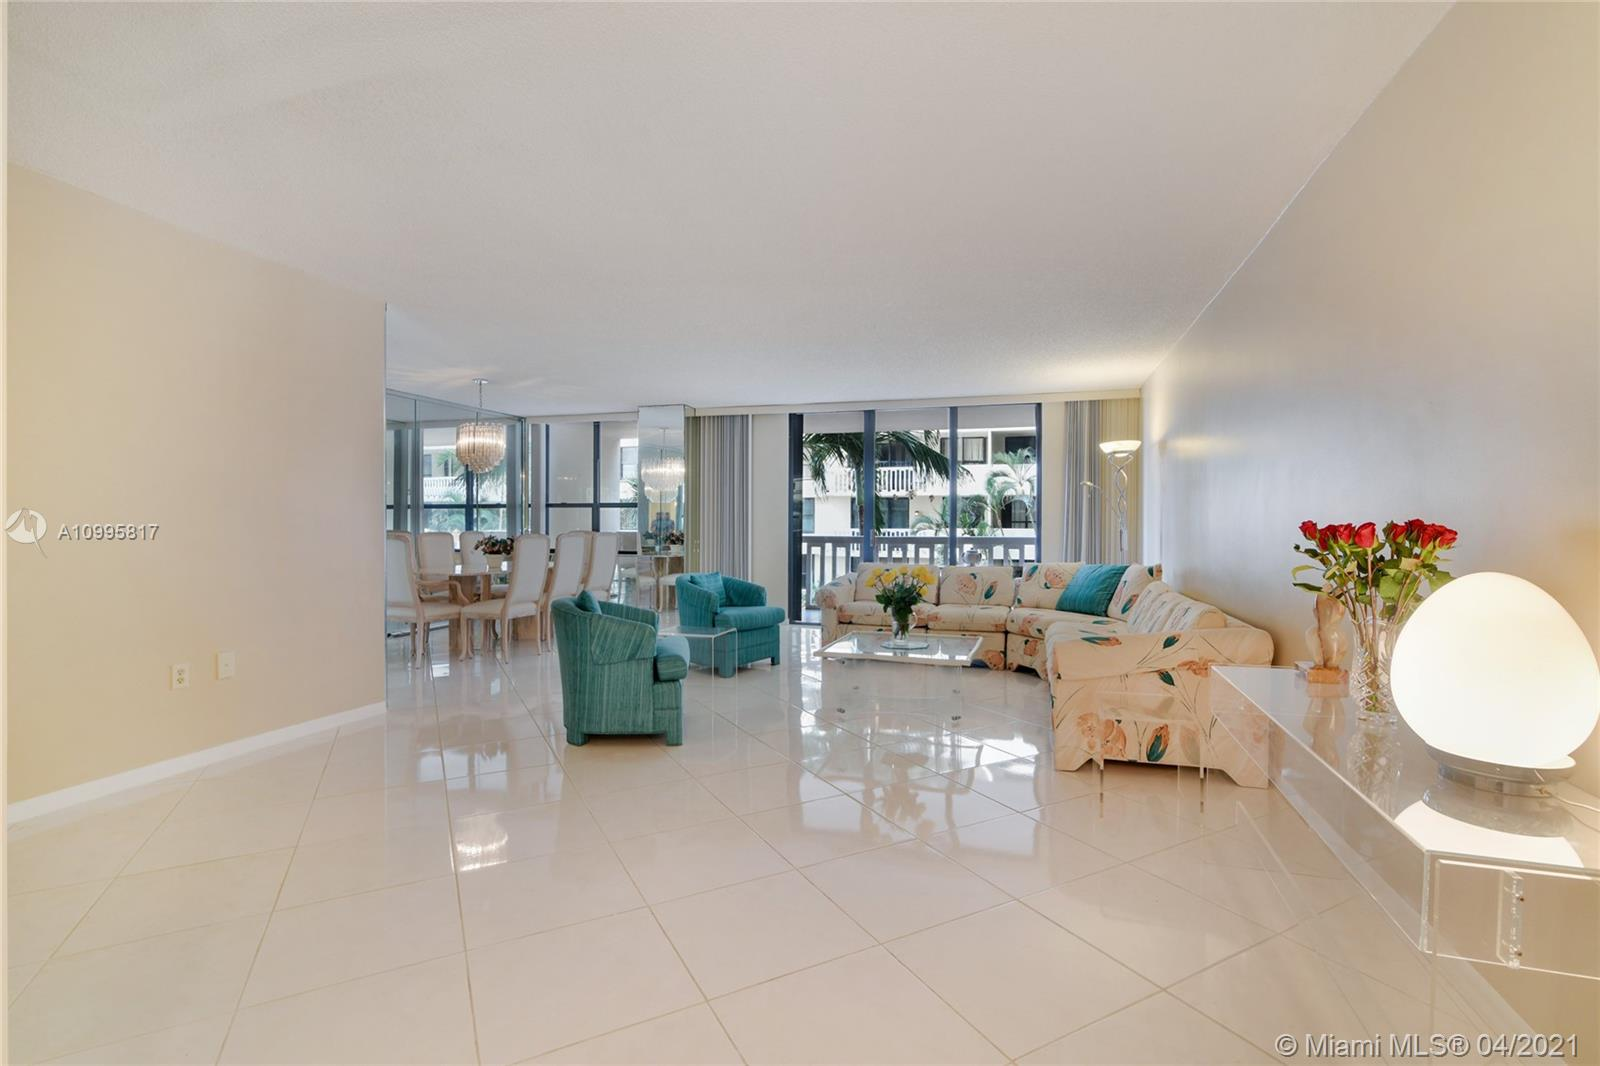 Photo of 9801 Collins Ave #5H, Bal Harbour, Florida, 33154 - Floor Plan